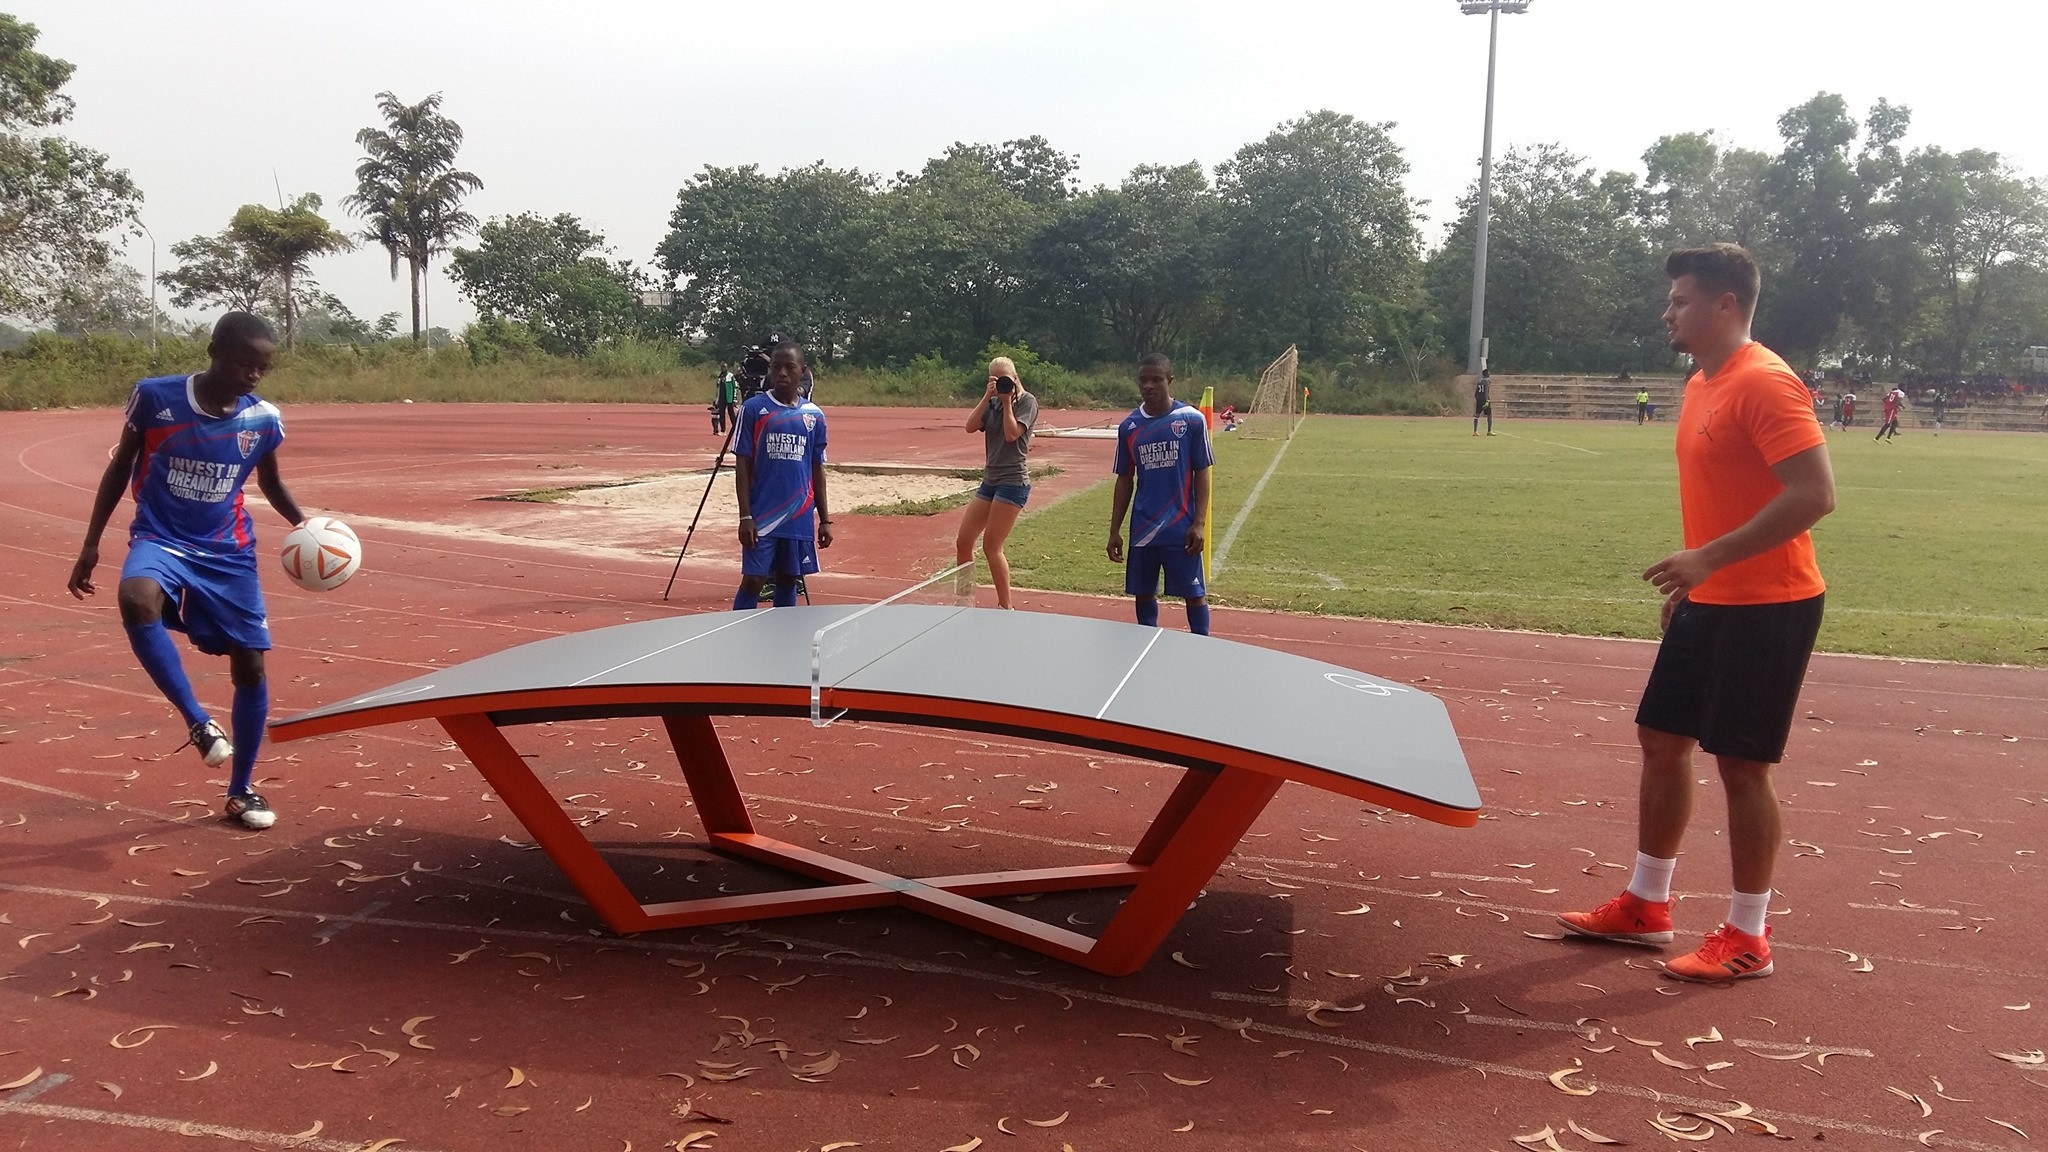 Nigerian teqball official reports rapid growth as sport appeals to all ages